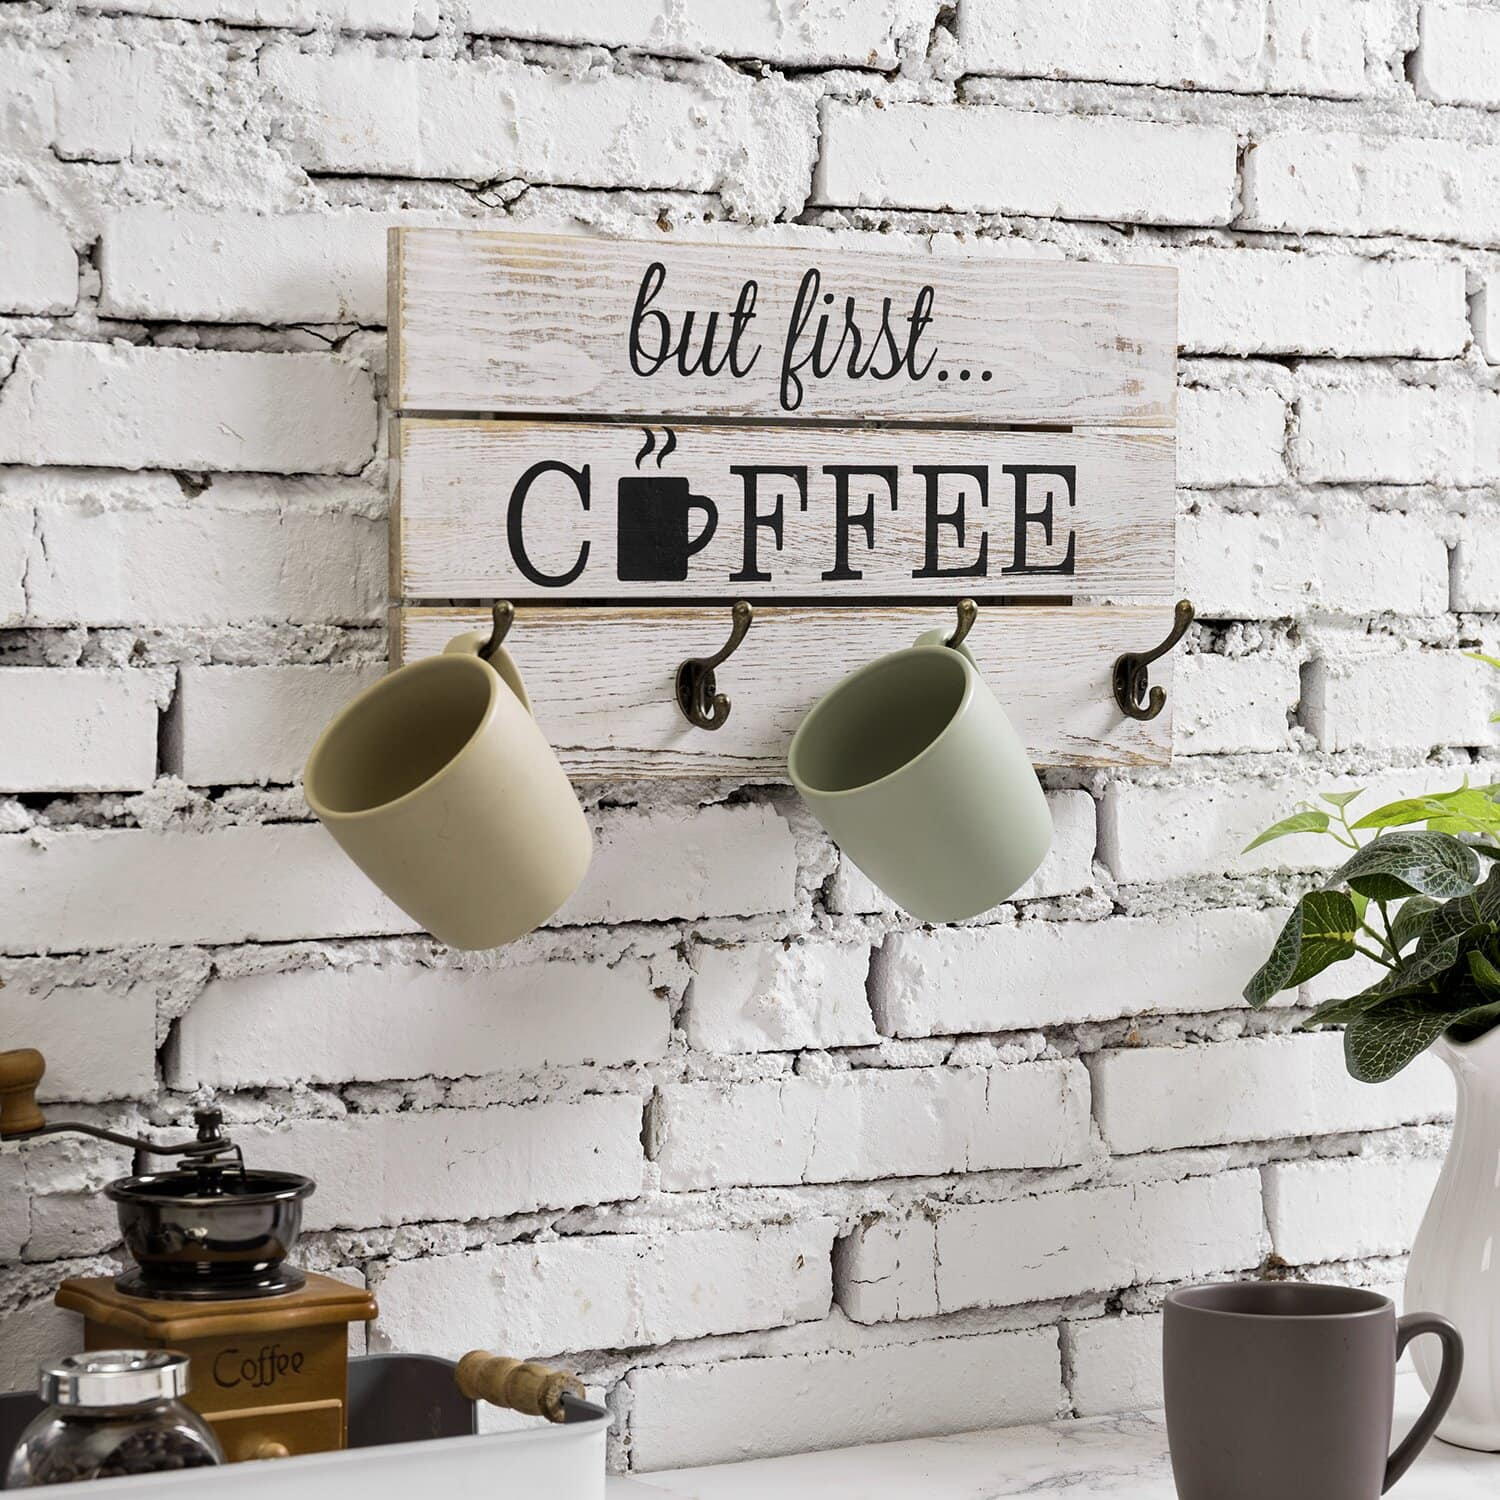 But First Coffee…